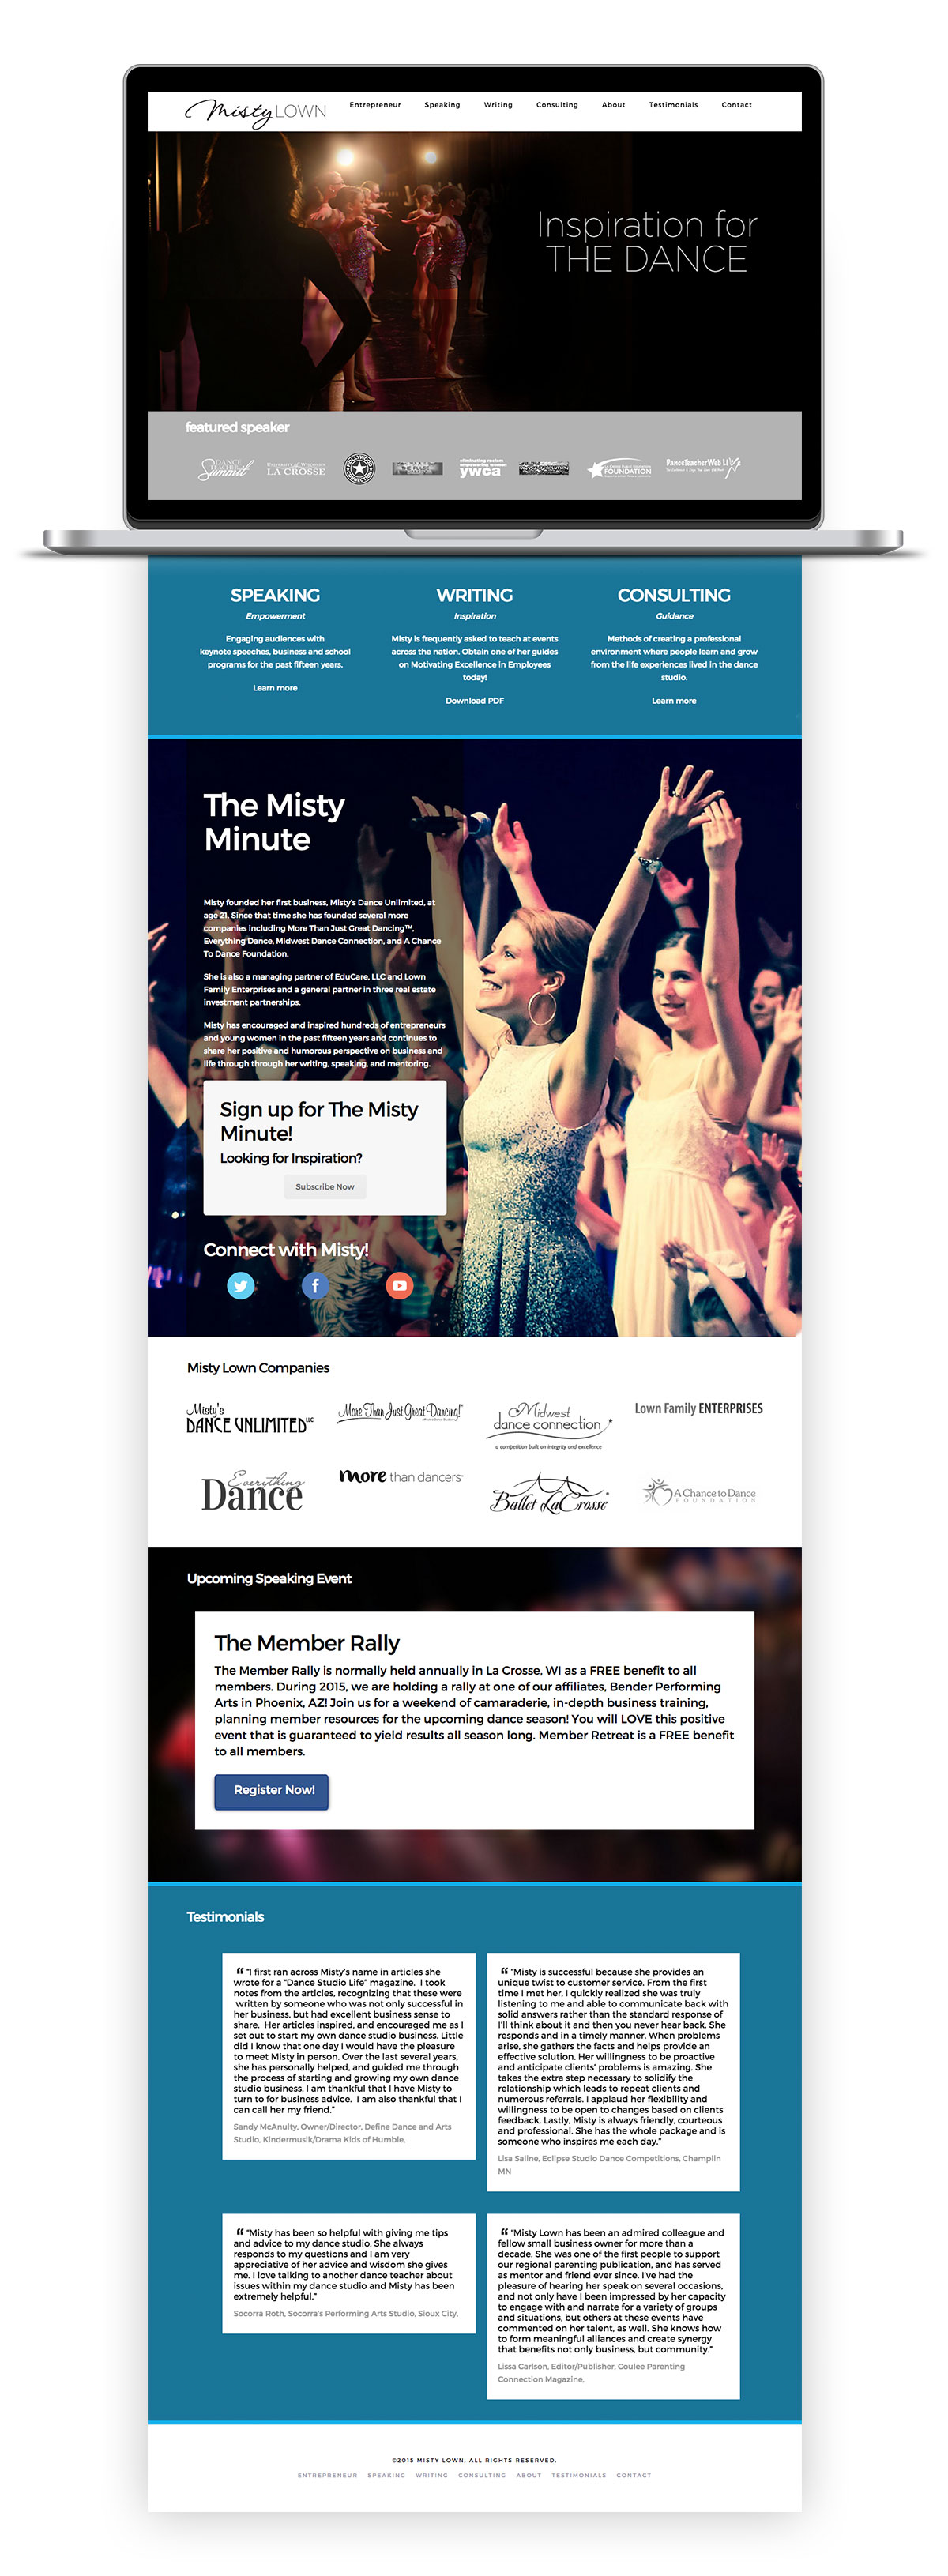 Image of home page for new Misty Lown responsive site as shown on a laptop.